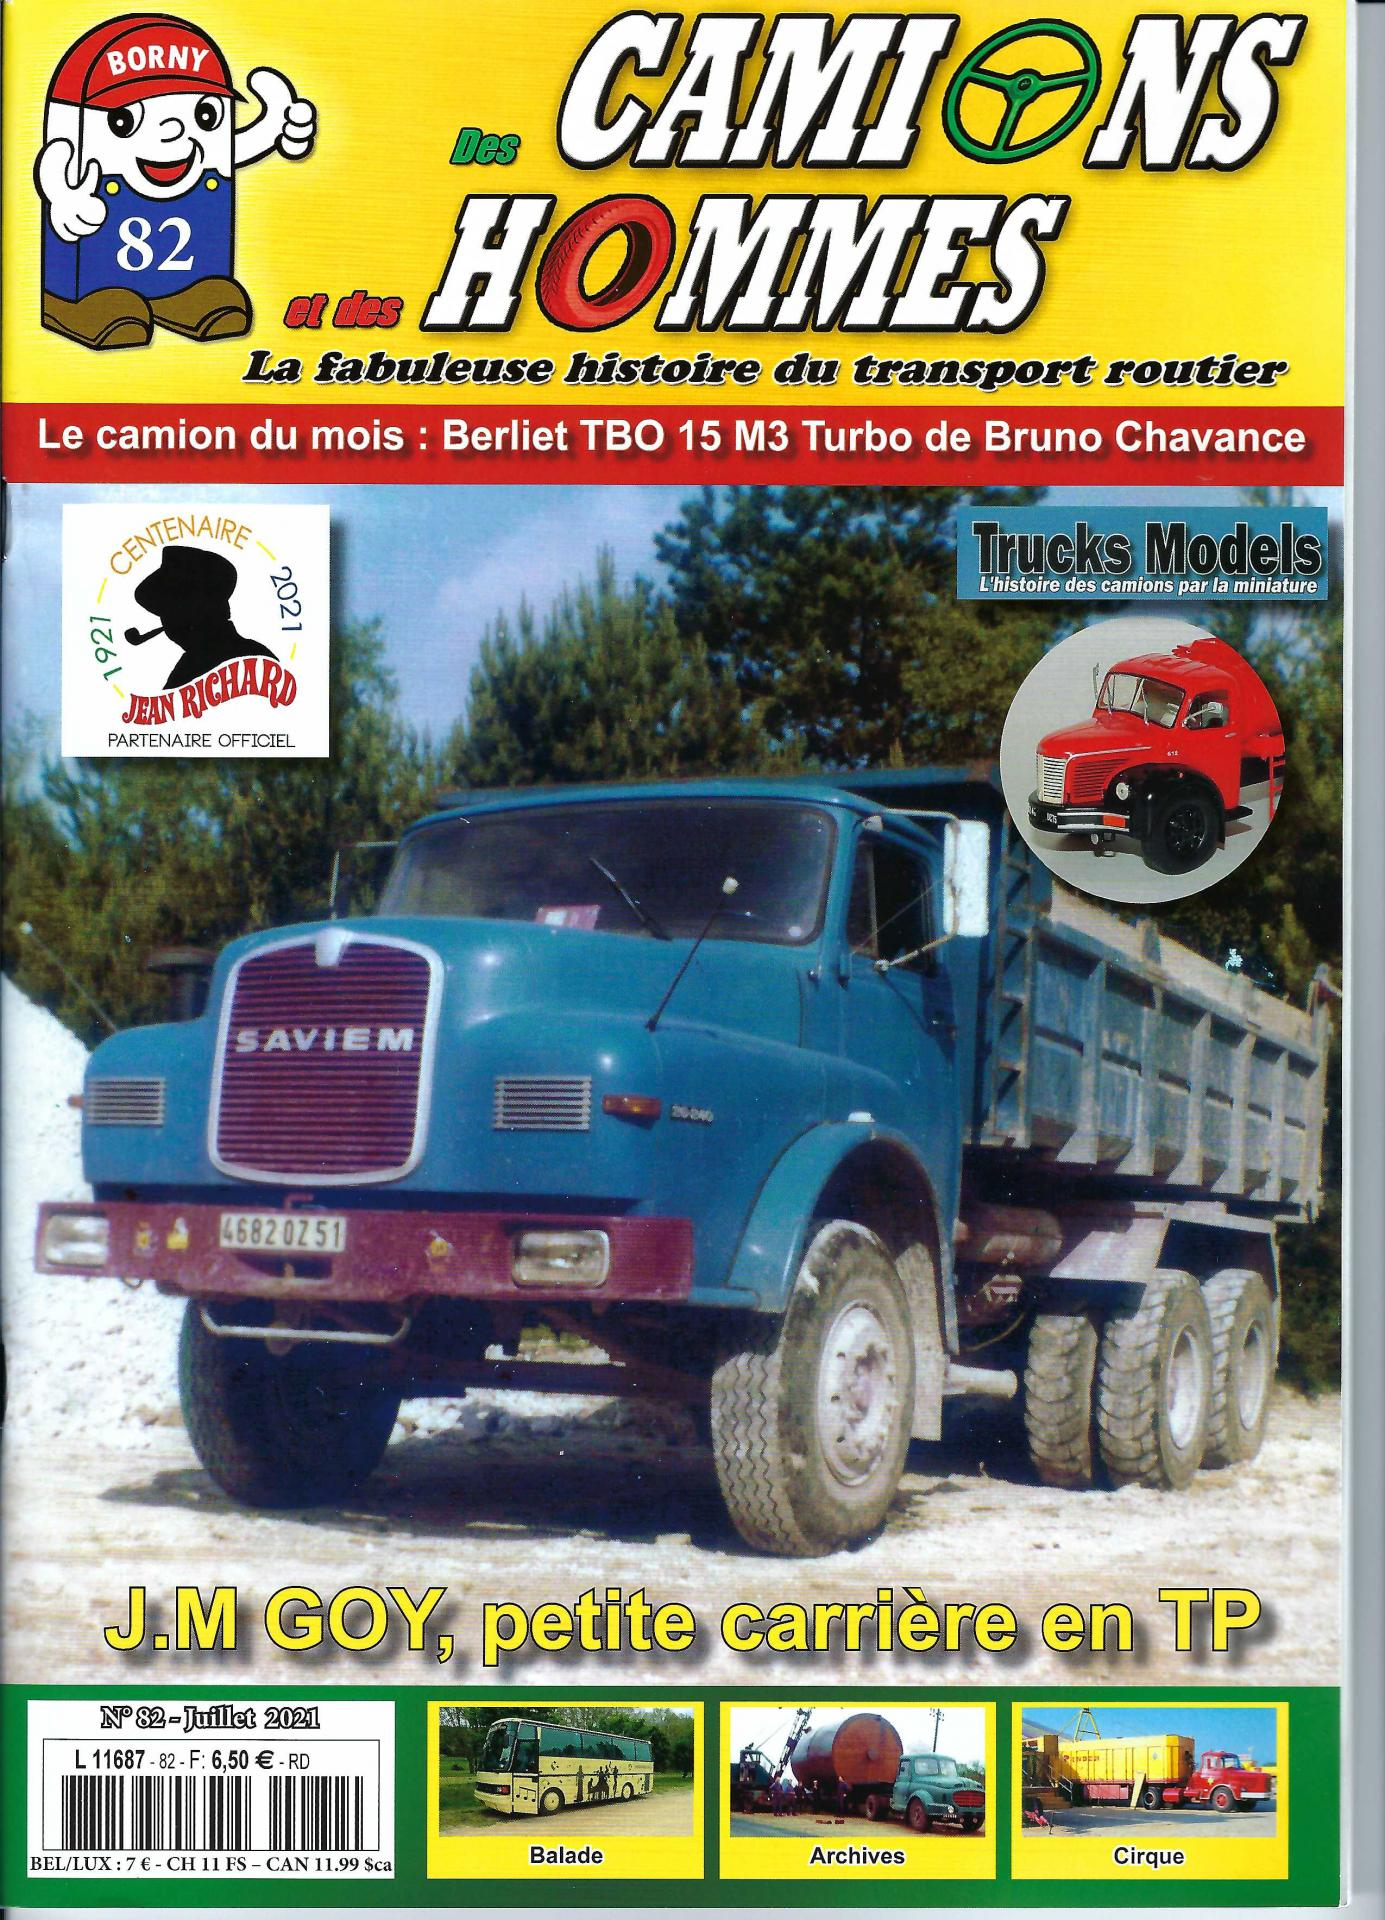 Camions hommes